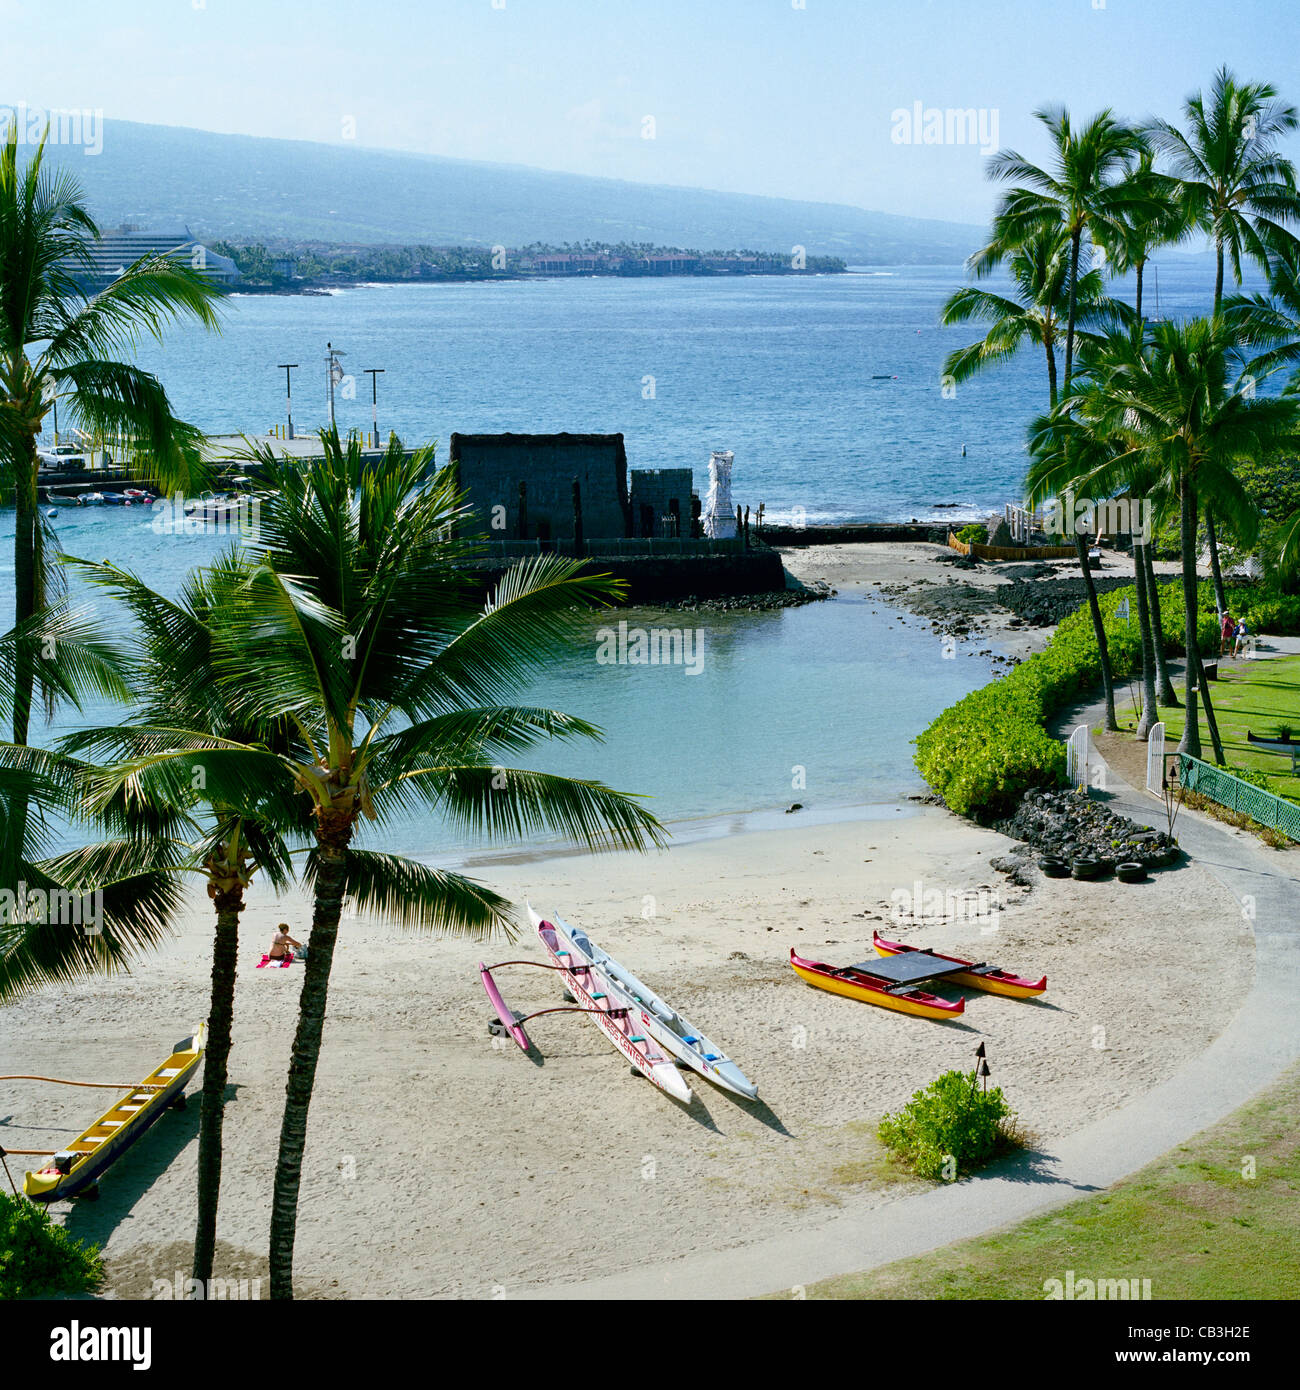 Big Island Beaches: Kamakahonu Beach Kailua-Kona Big Island Hawaii Stock Photo